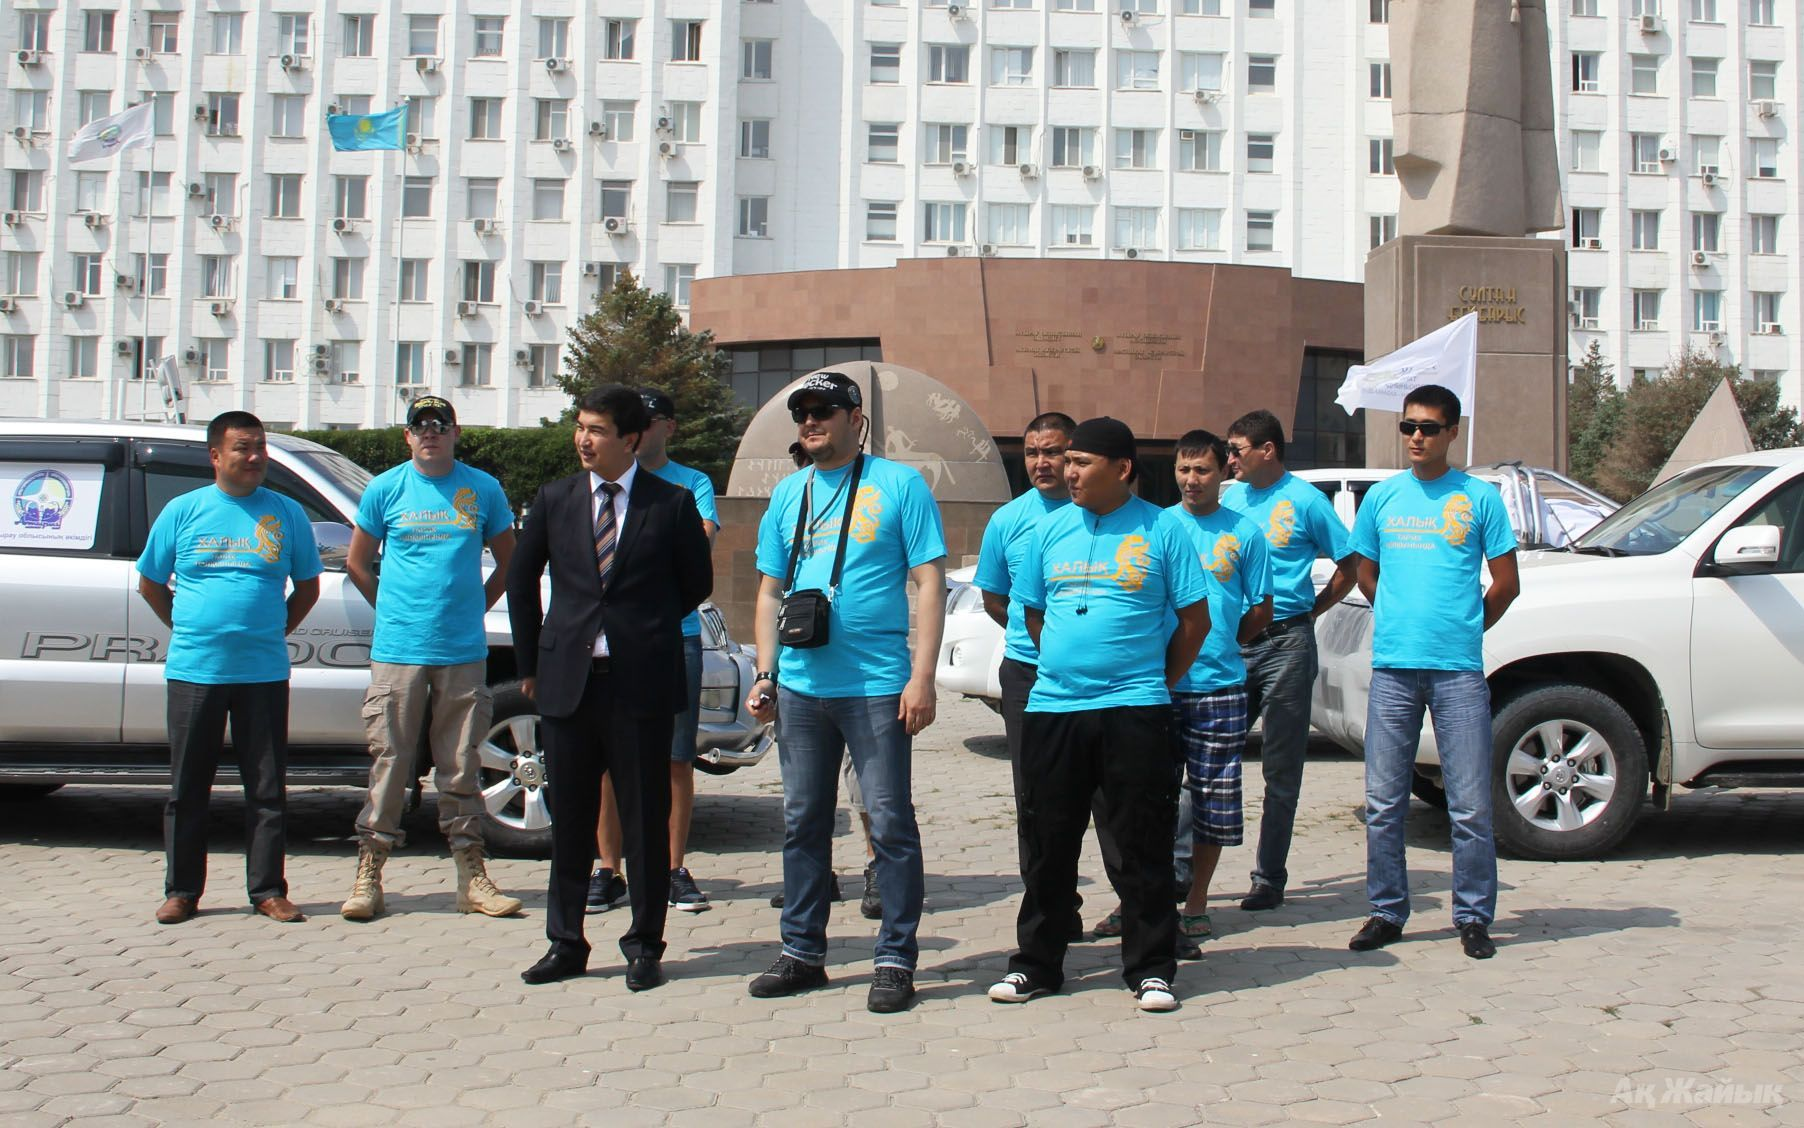 Atyrau Oblast Deputy Governor Shyngys MUKAN wishing good luck to the expedition team minutes before the journey